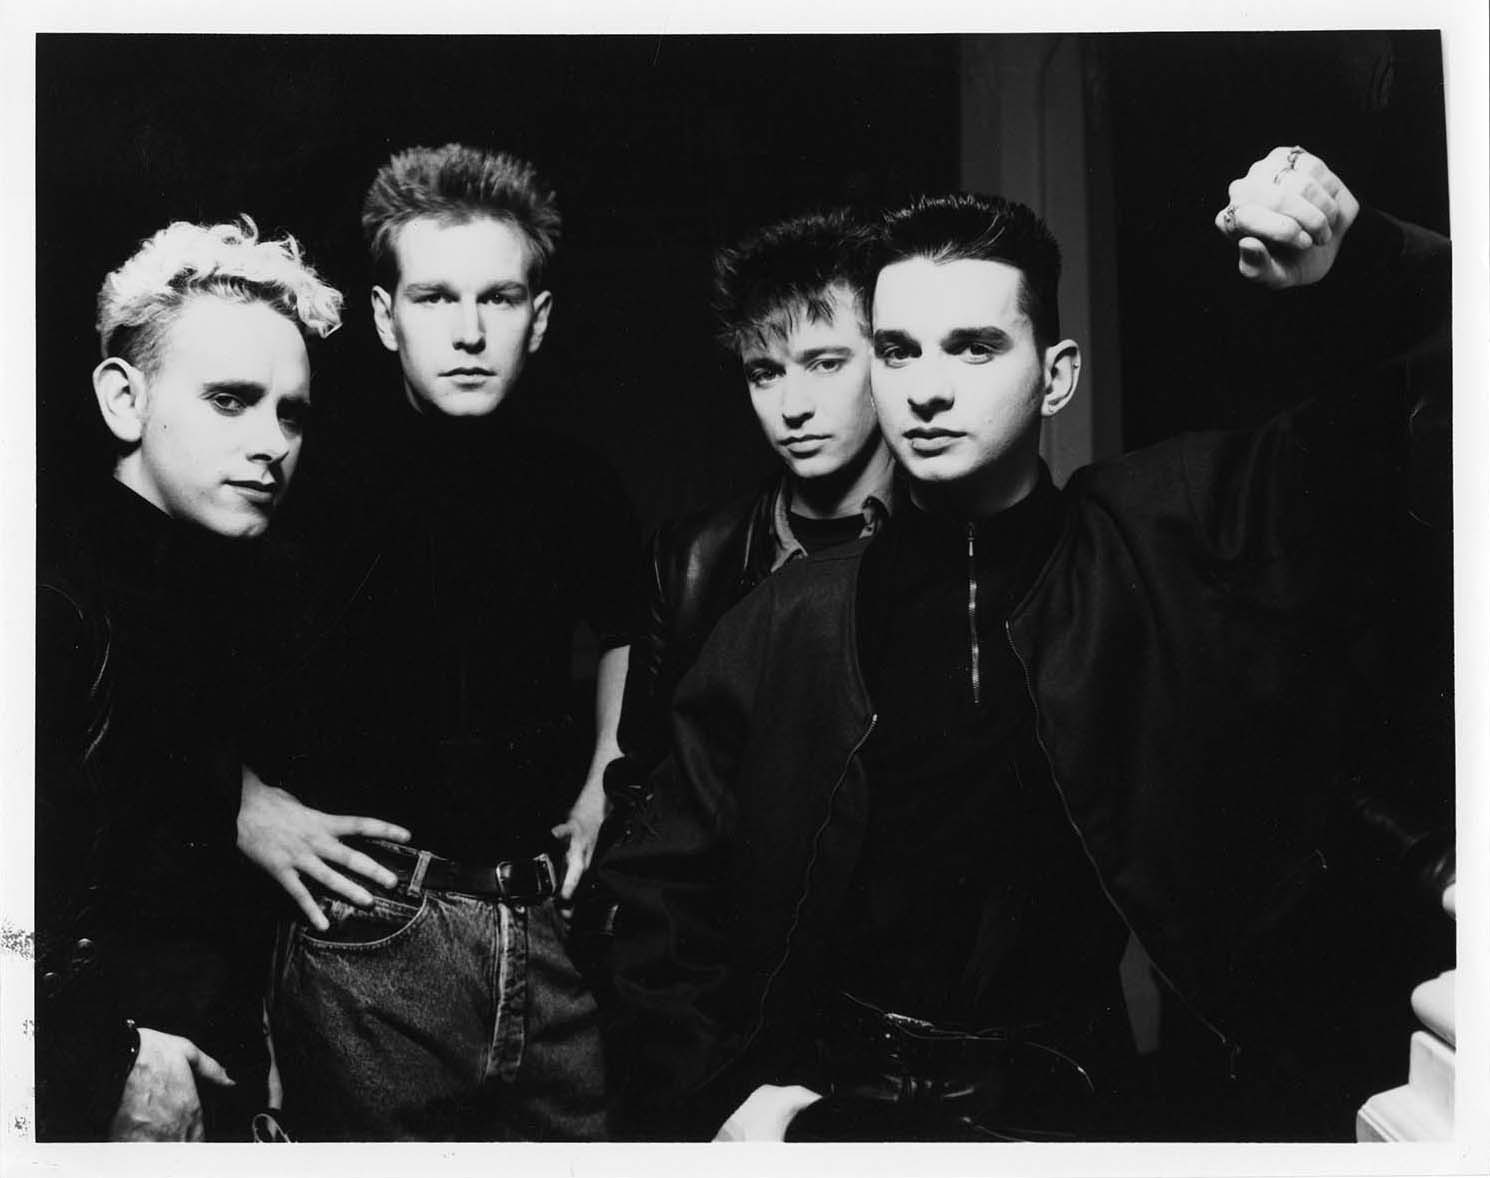 Depeche Mode promo photo